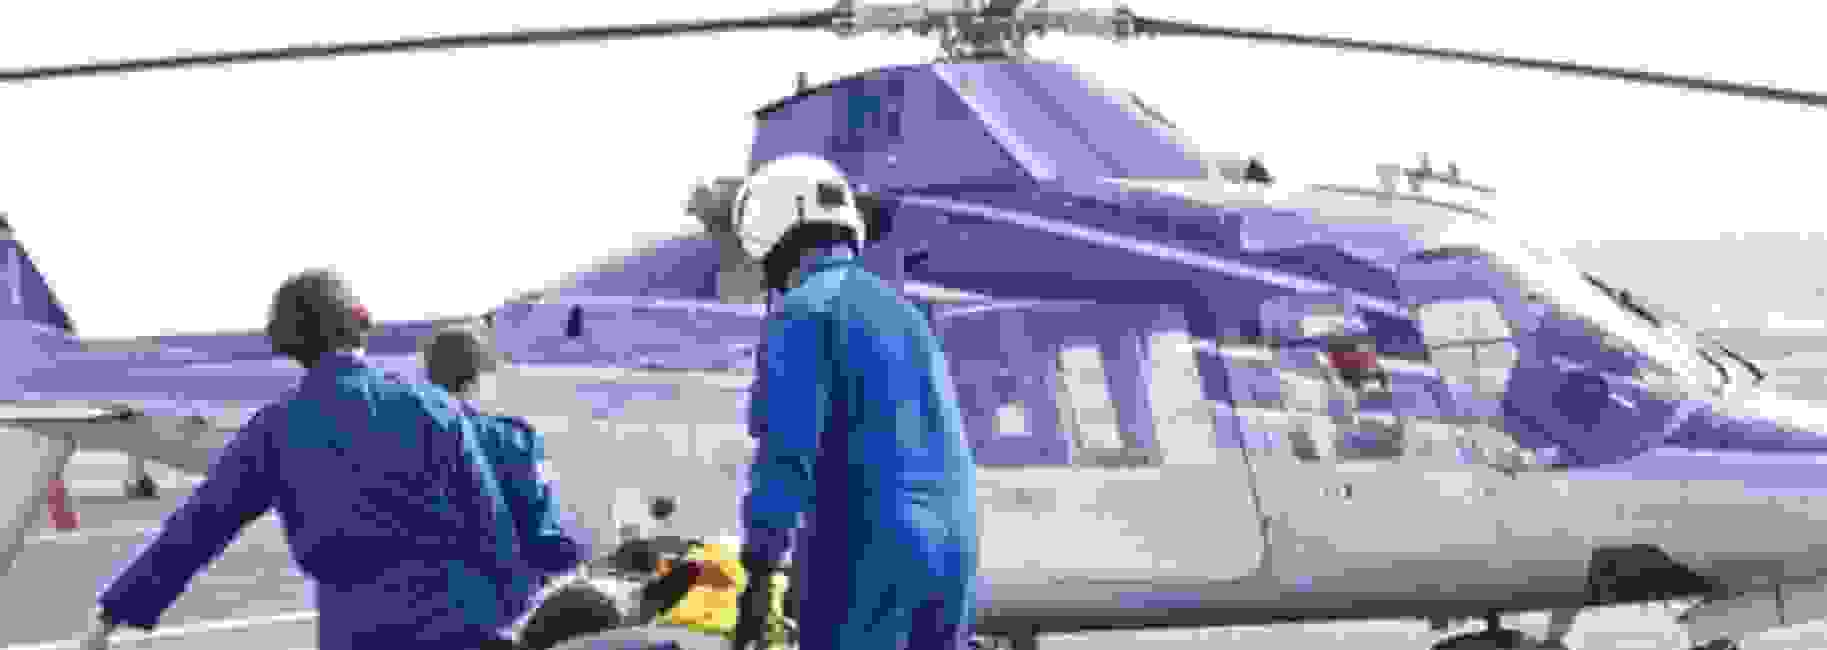 Accidents happen without warning.  Don't be caught without emergency medical evac & repatriation